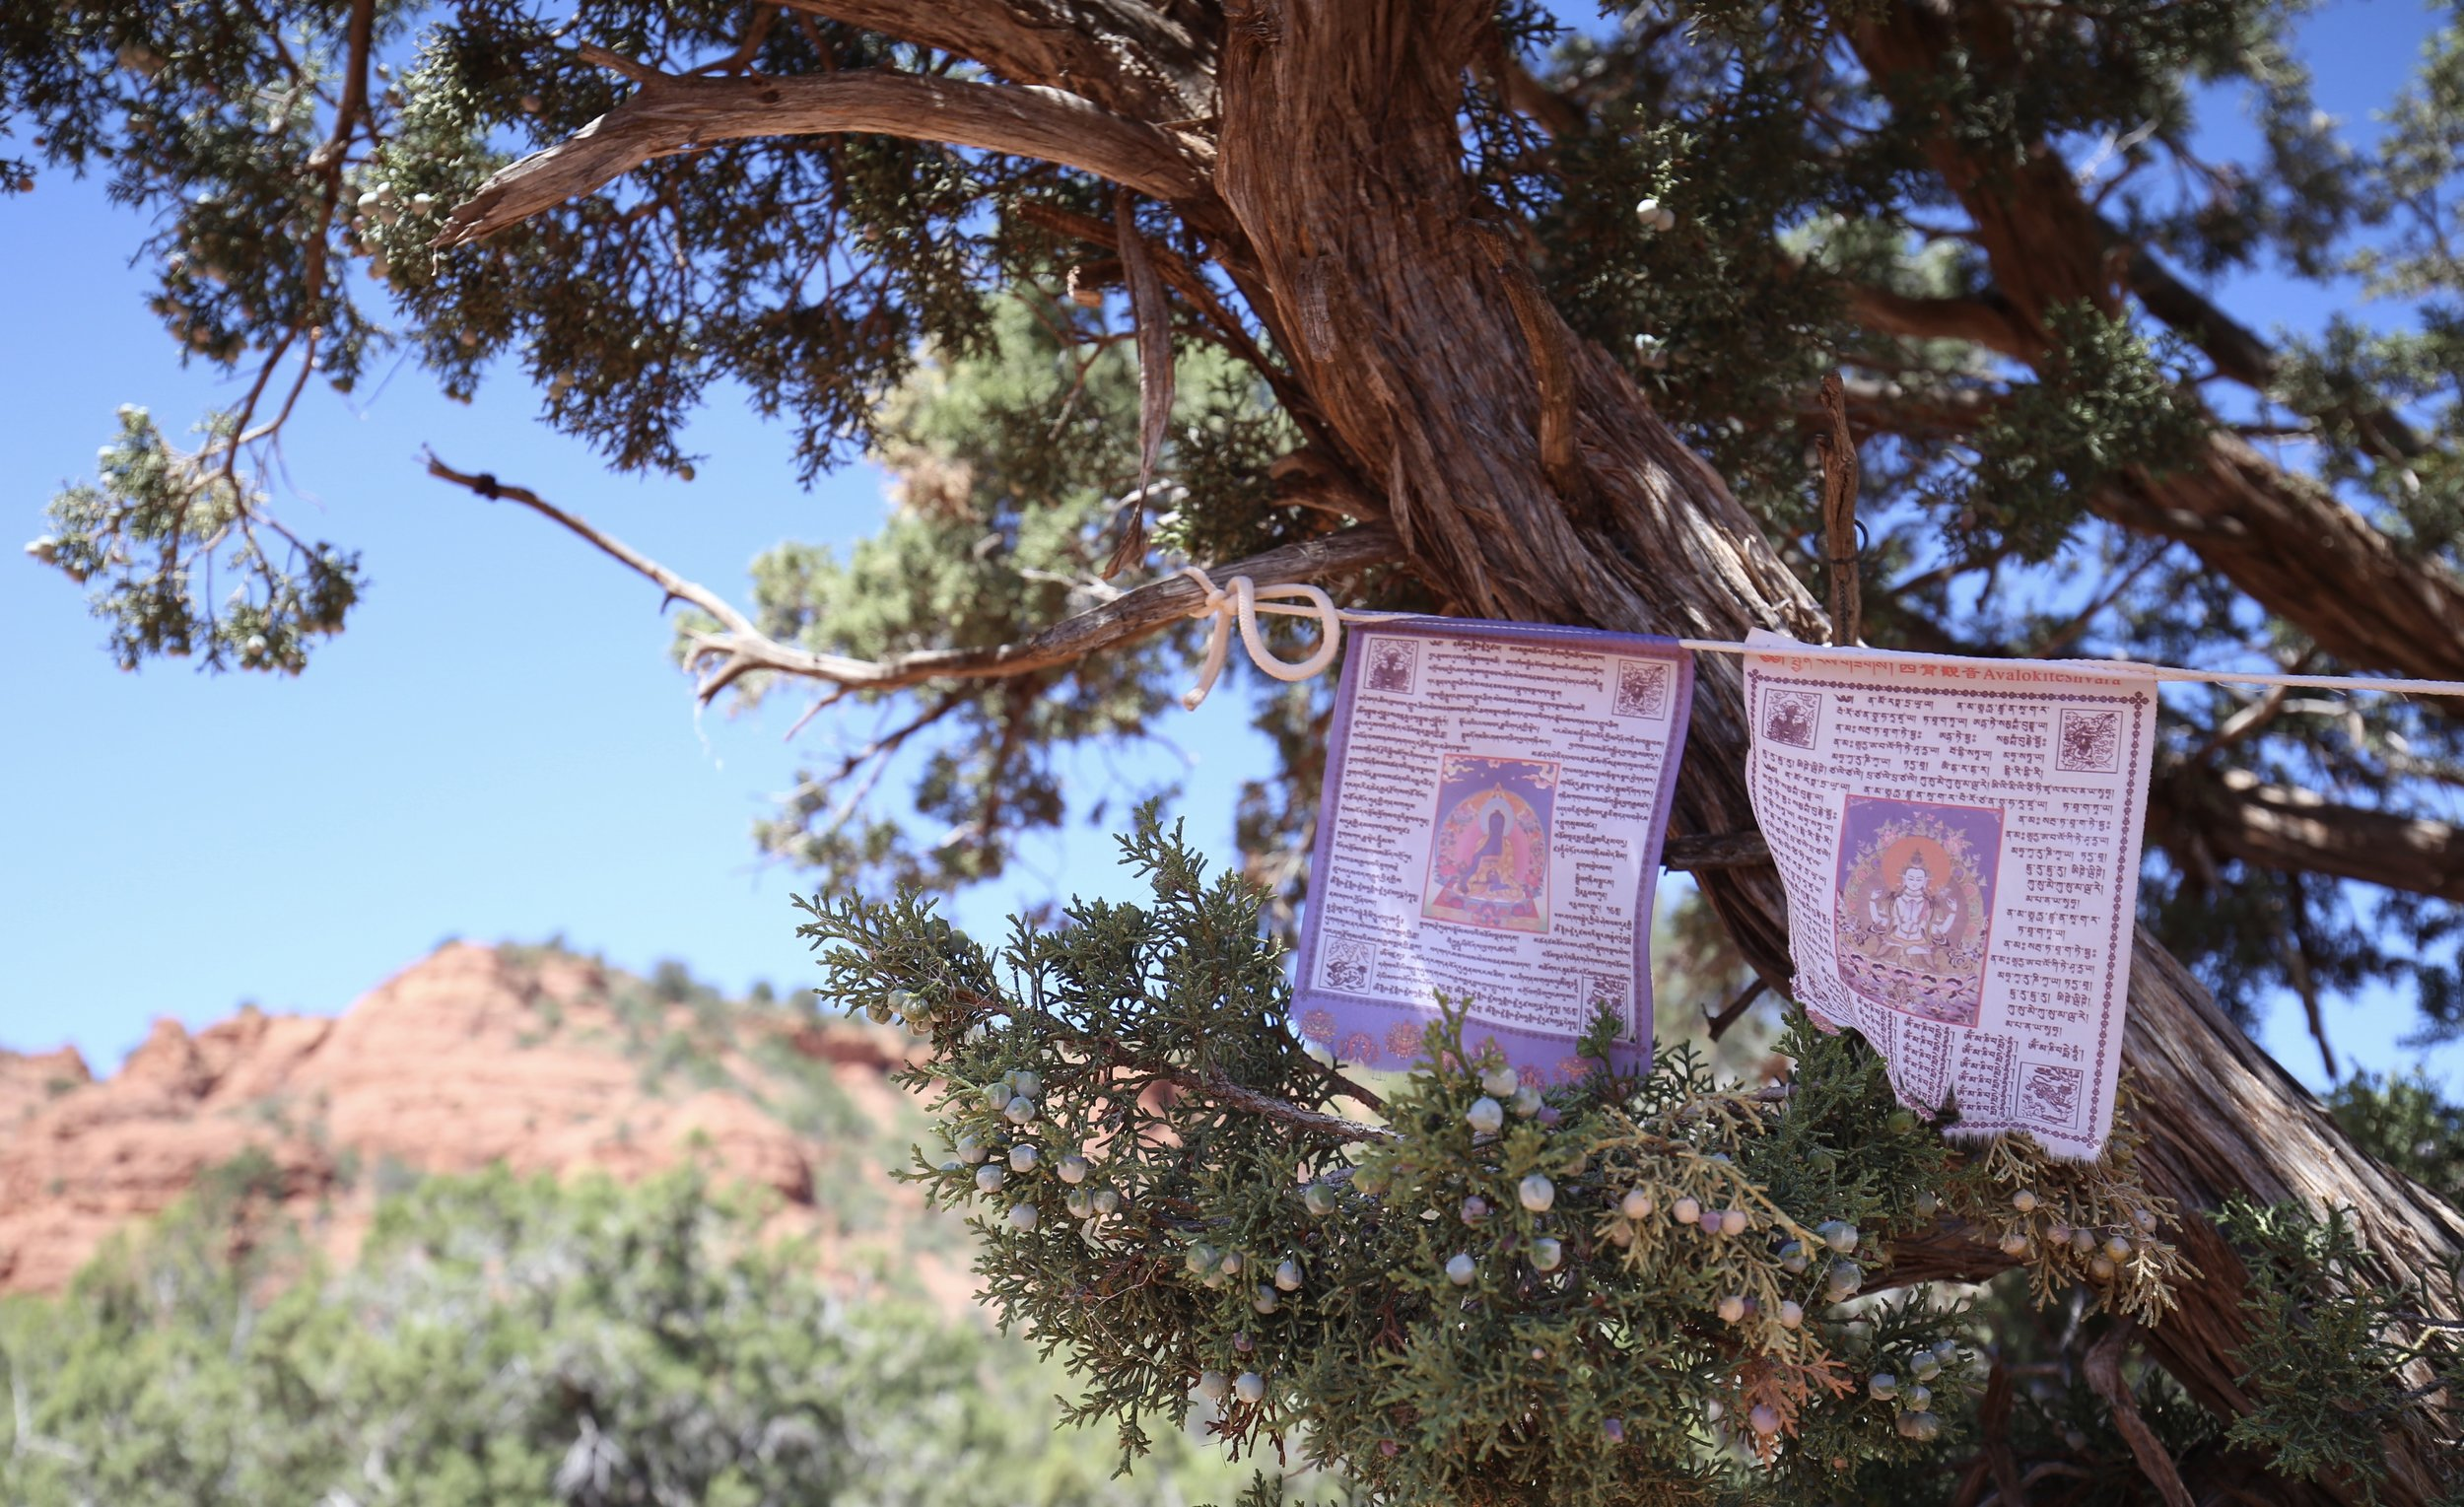 Purple prayer flags in a pinion tree.